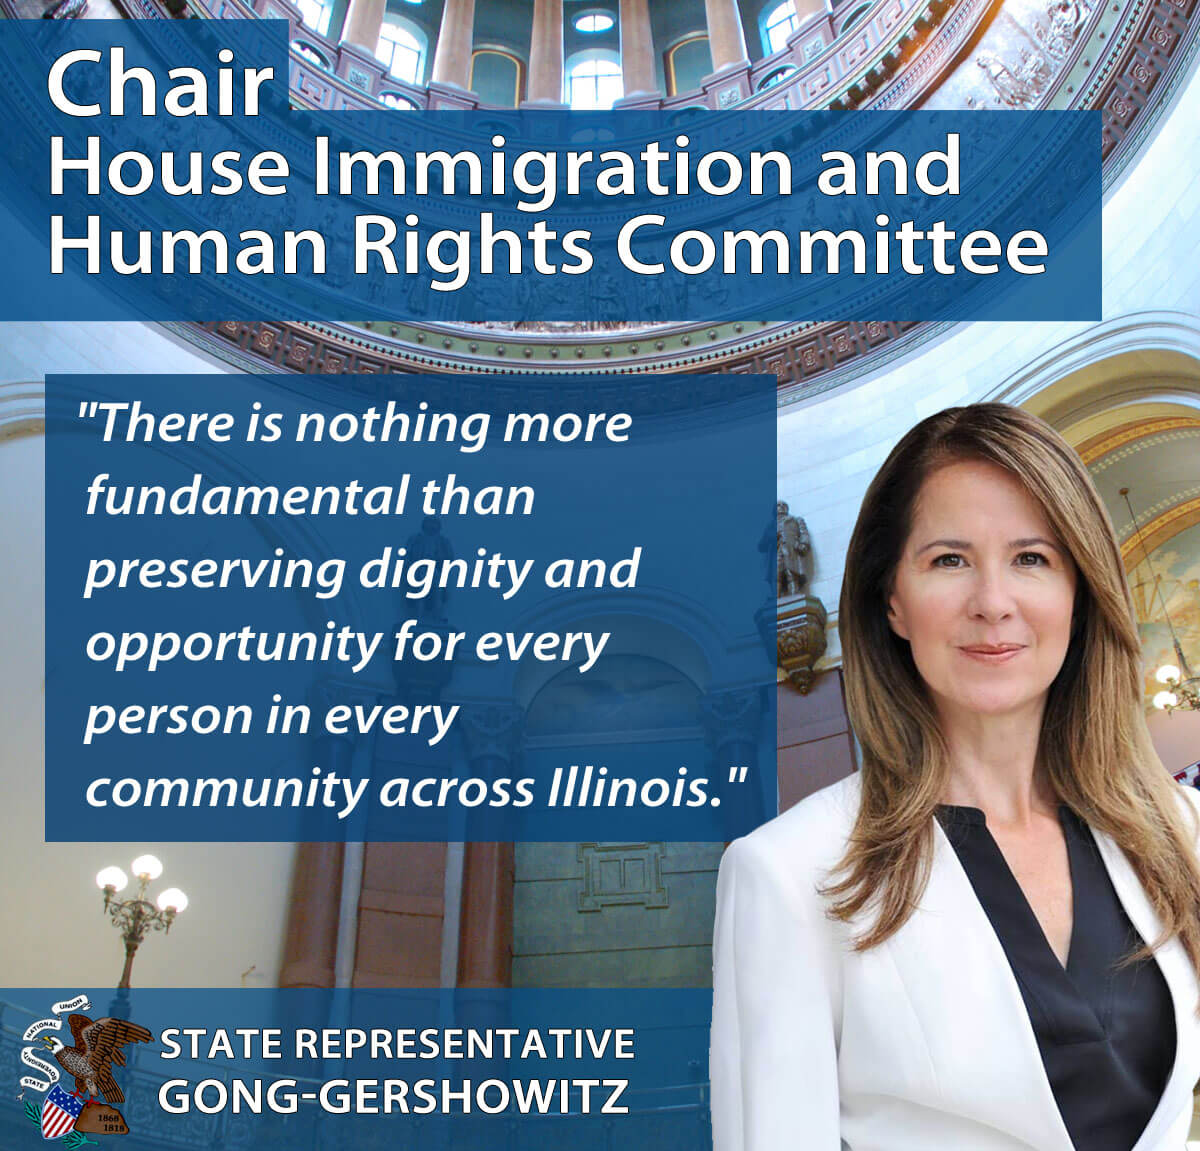 Gong-Gershowitz Named Chair of House Immigration and Human Rights Committee, Vice Chair of Judiciary Civil